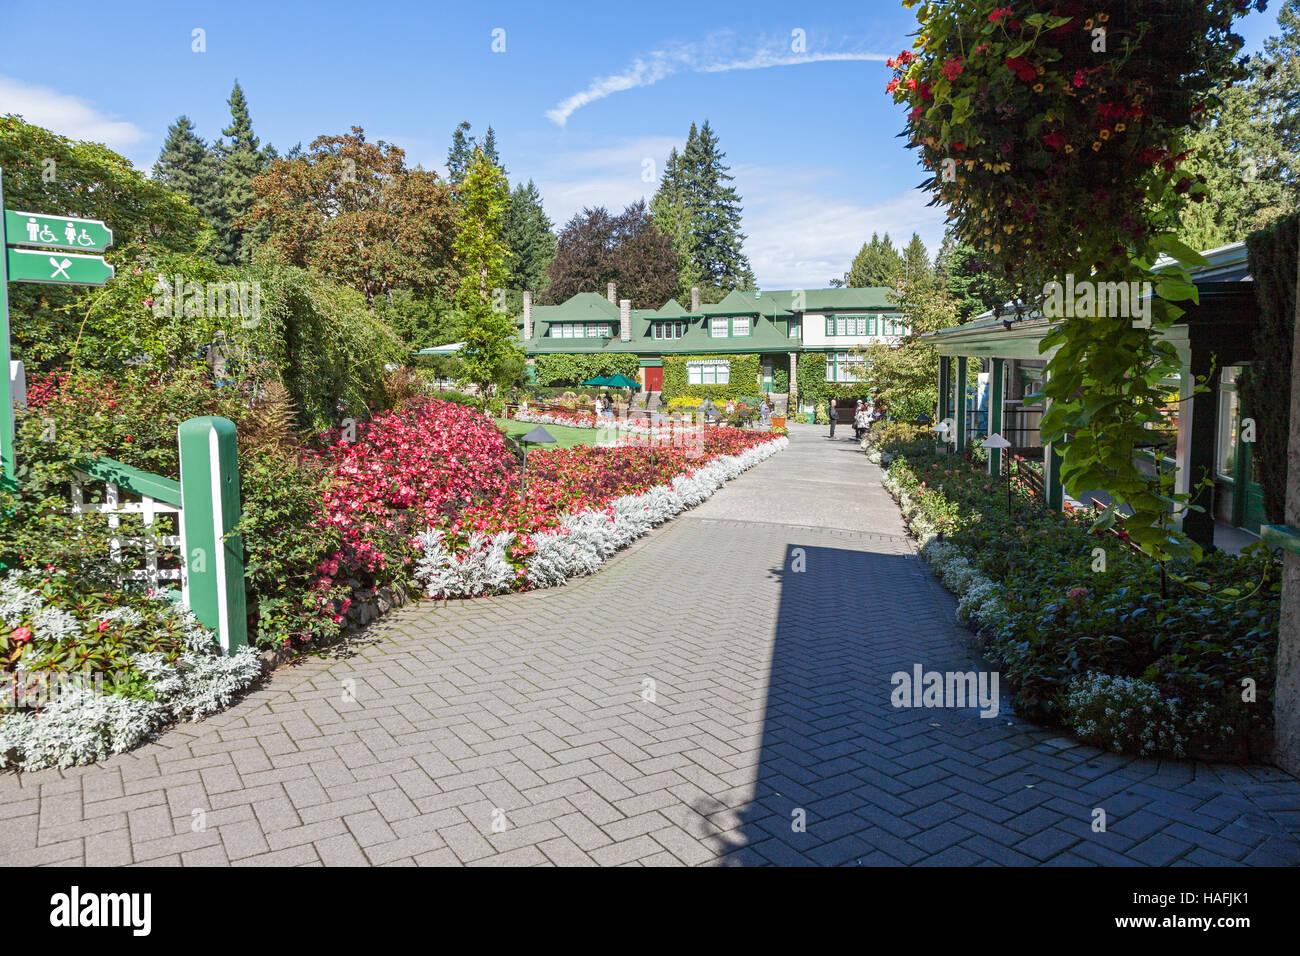 the entrance to butchart gardens brentwood bay british columbia canada located near victoria on vancouver island